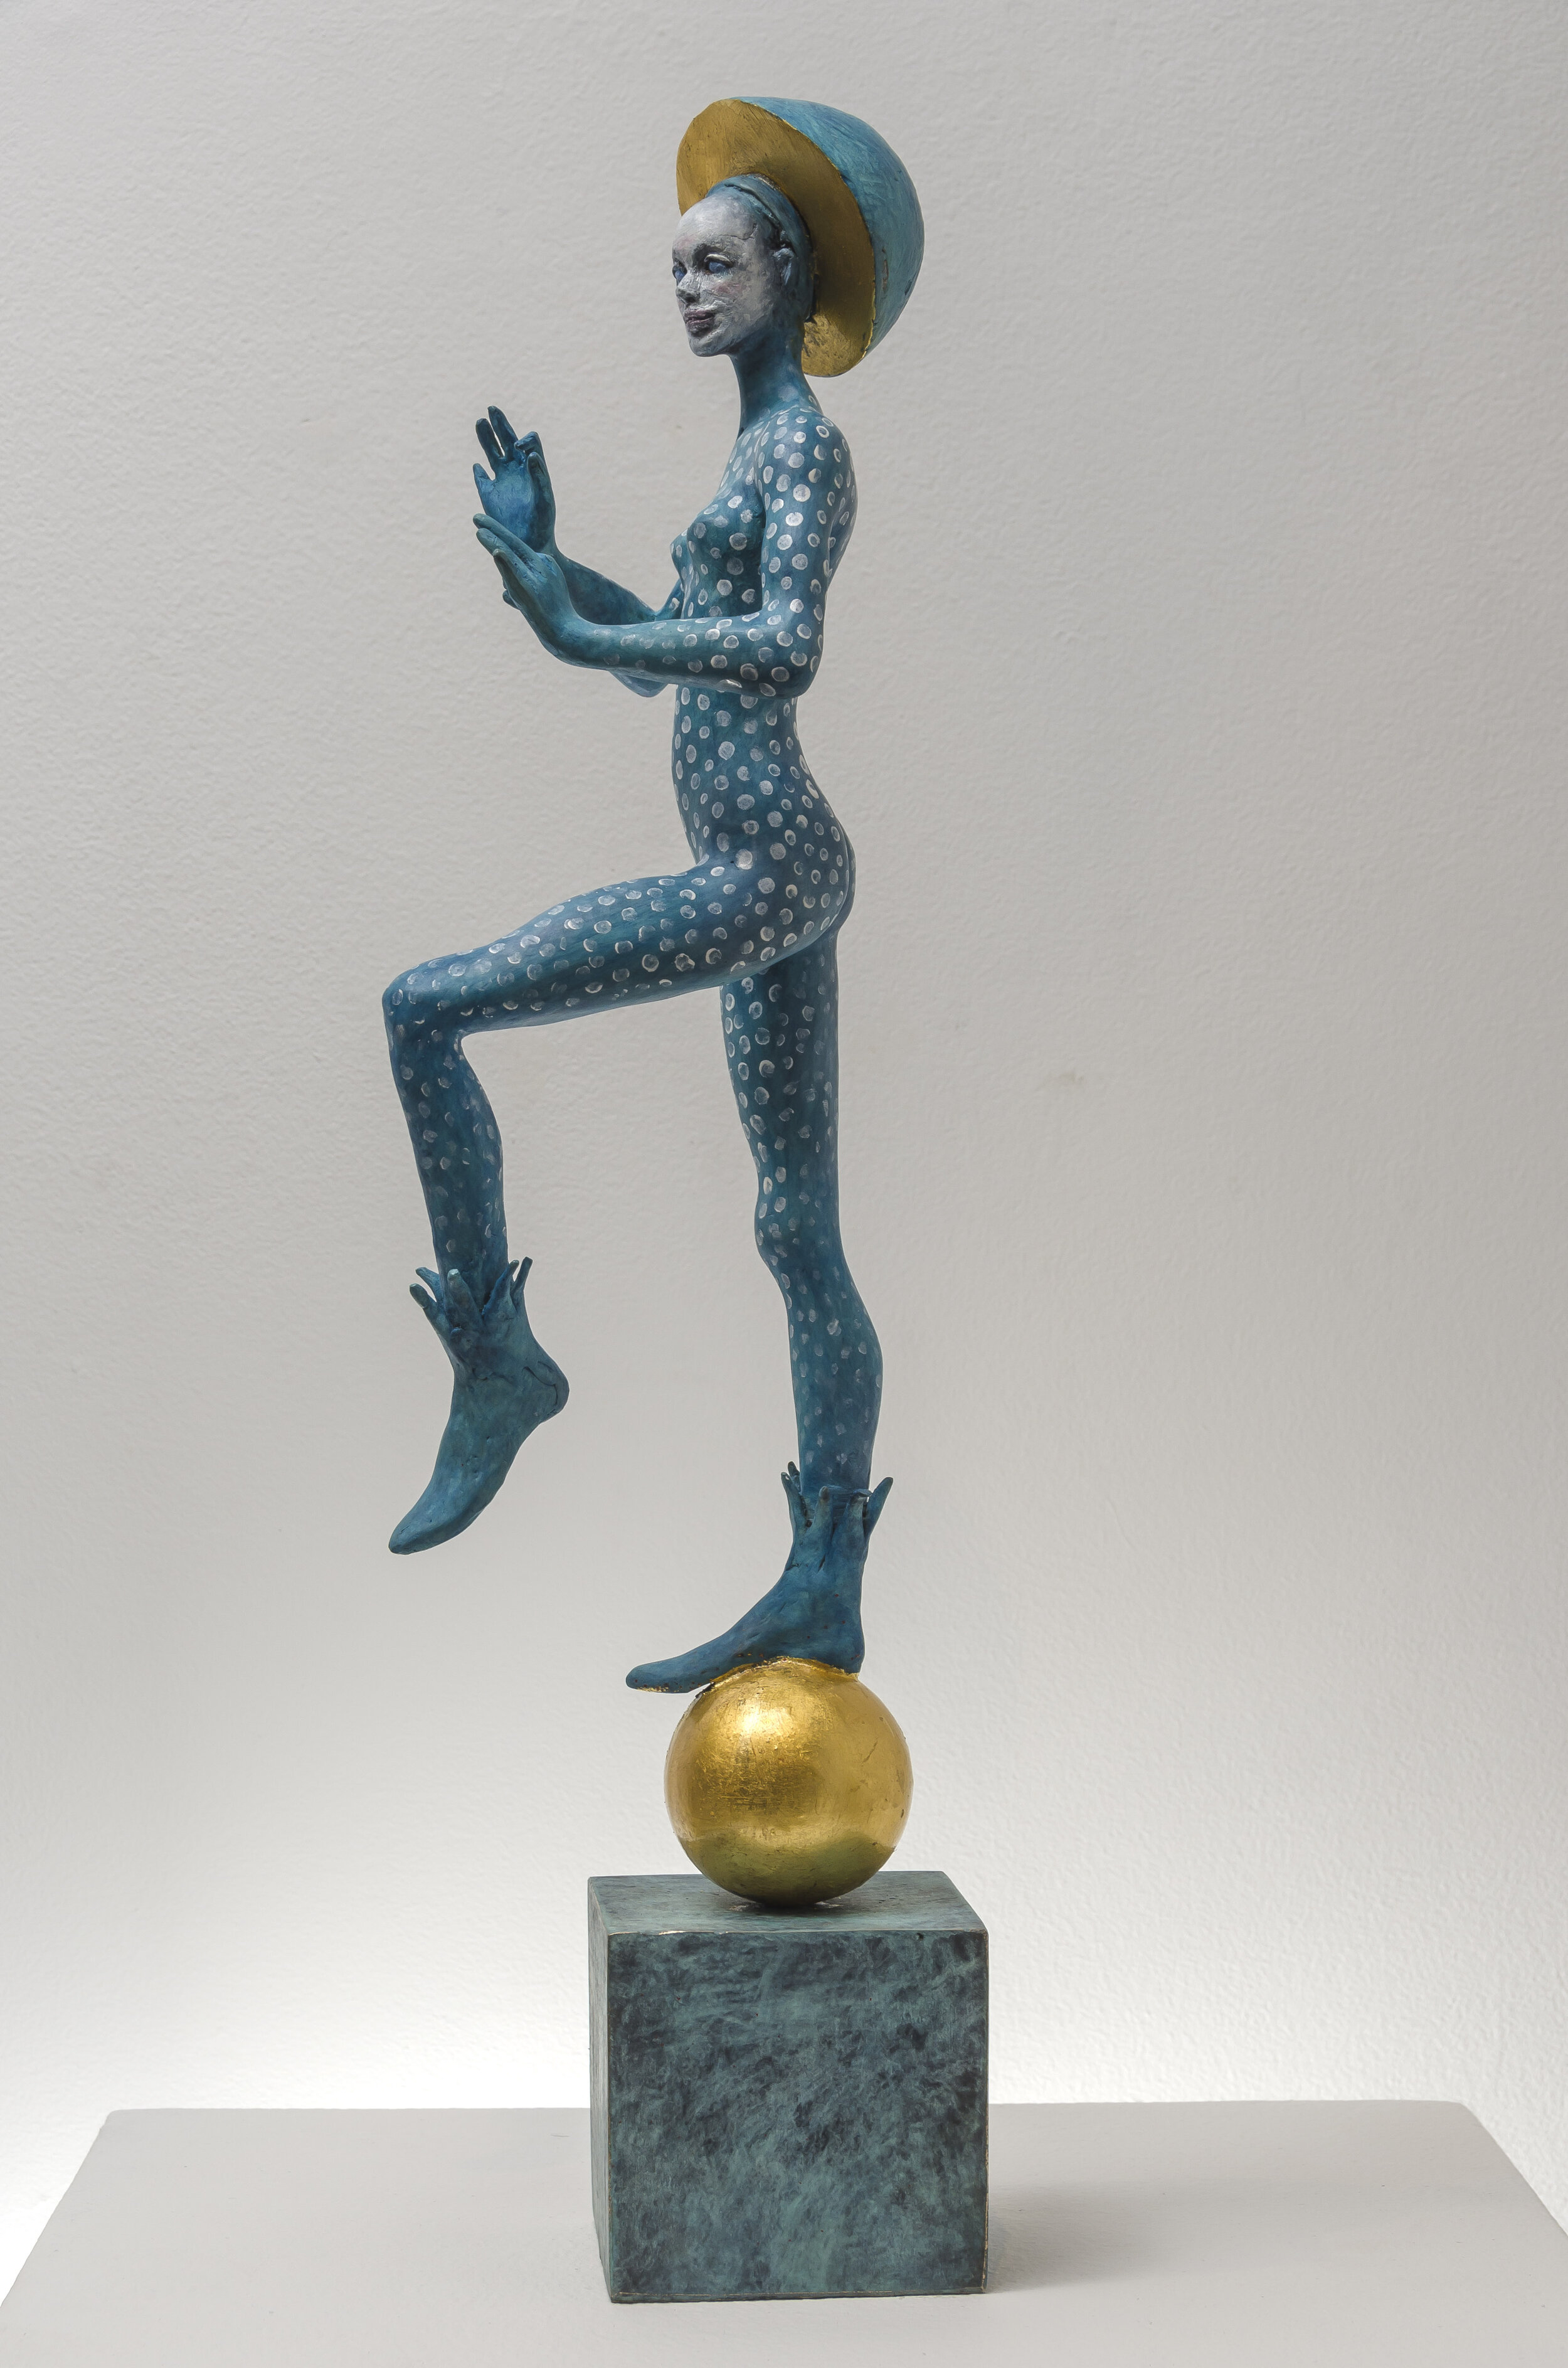 Dancer , 2019  gold leaf and oil paint on patinated bronze 20 x 6 x 6 inches; 50.8 x 15.2 x 15.2 centimeters